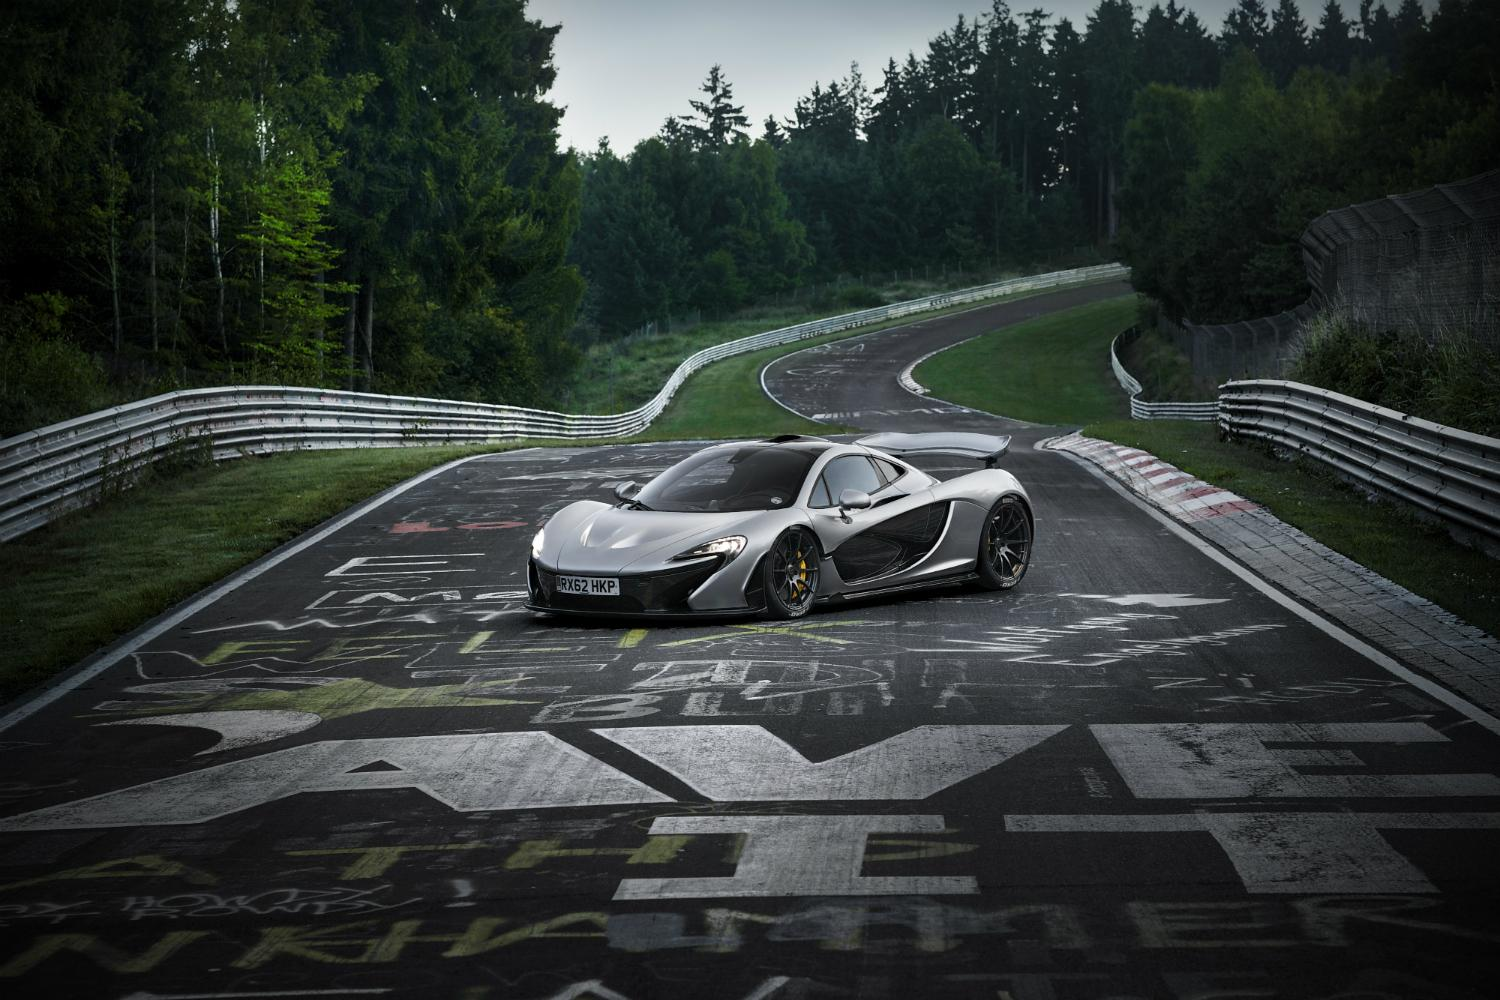 Nurburgring Speed Limits Could be Lifted for Automakers